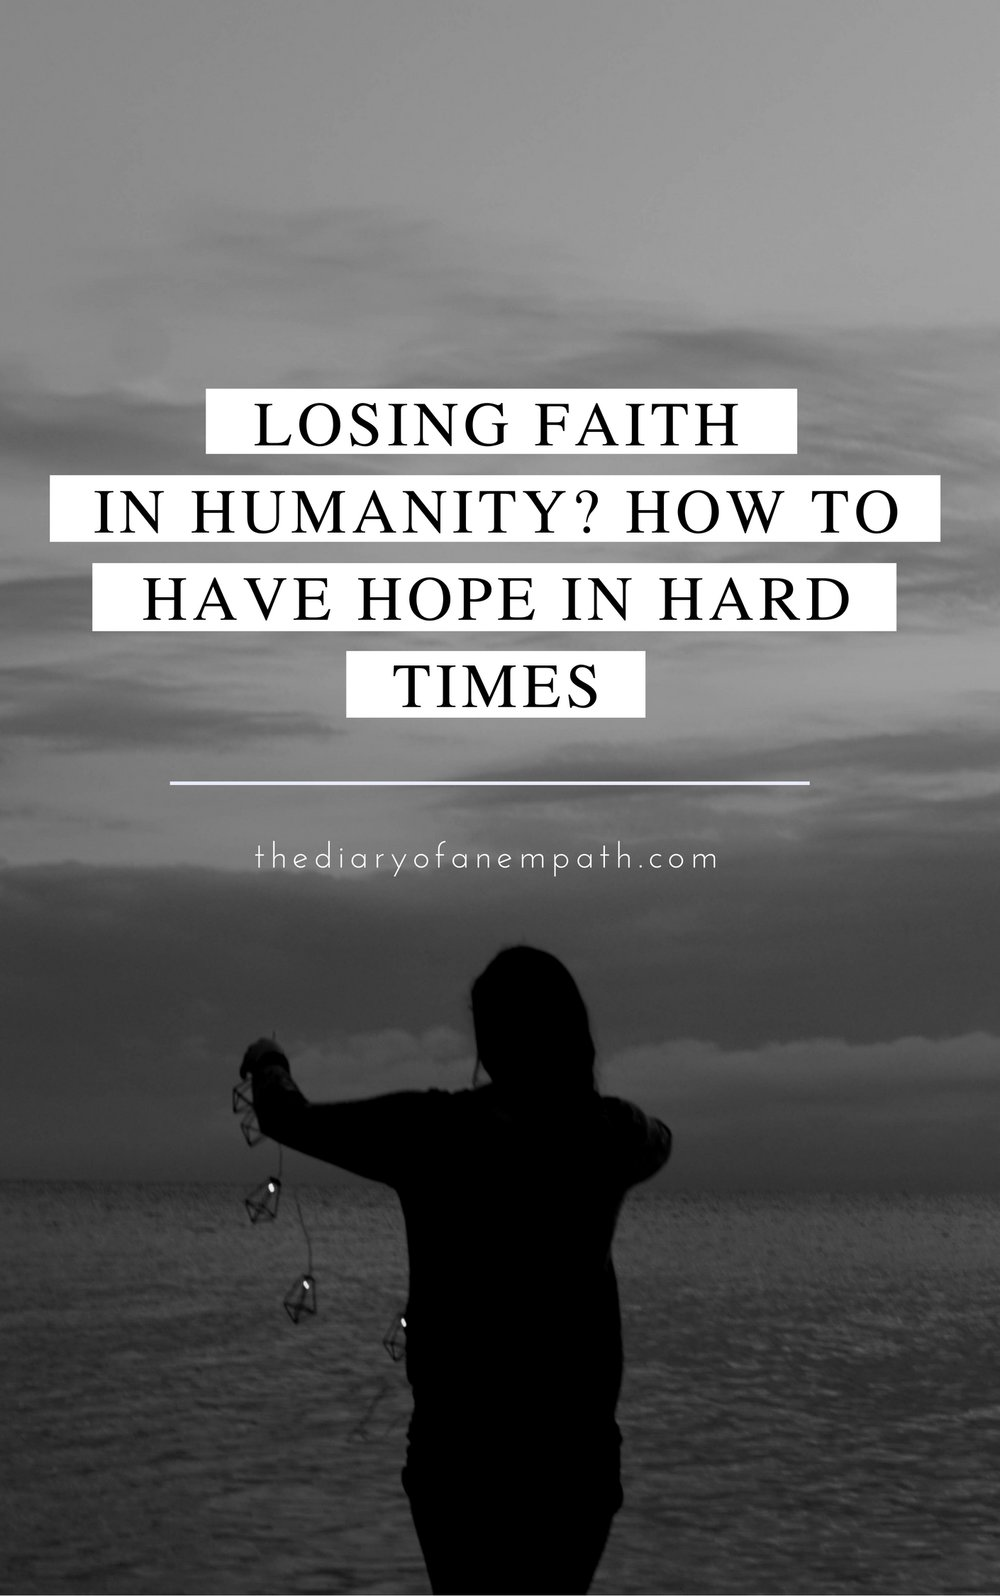 Losing faith in humanity- How to have hope in hard times, www.thediaryofanempath.com